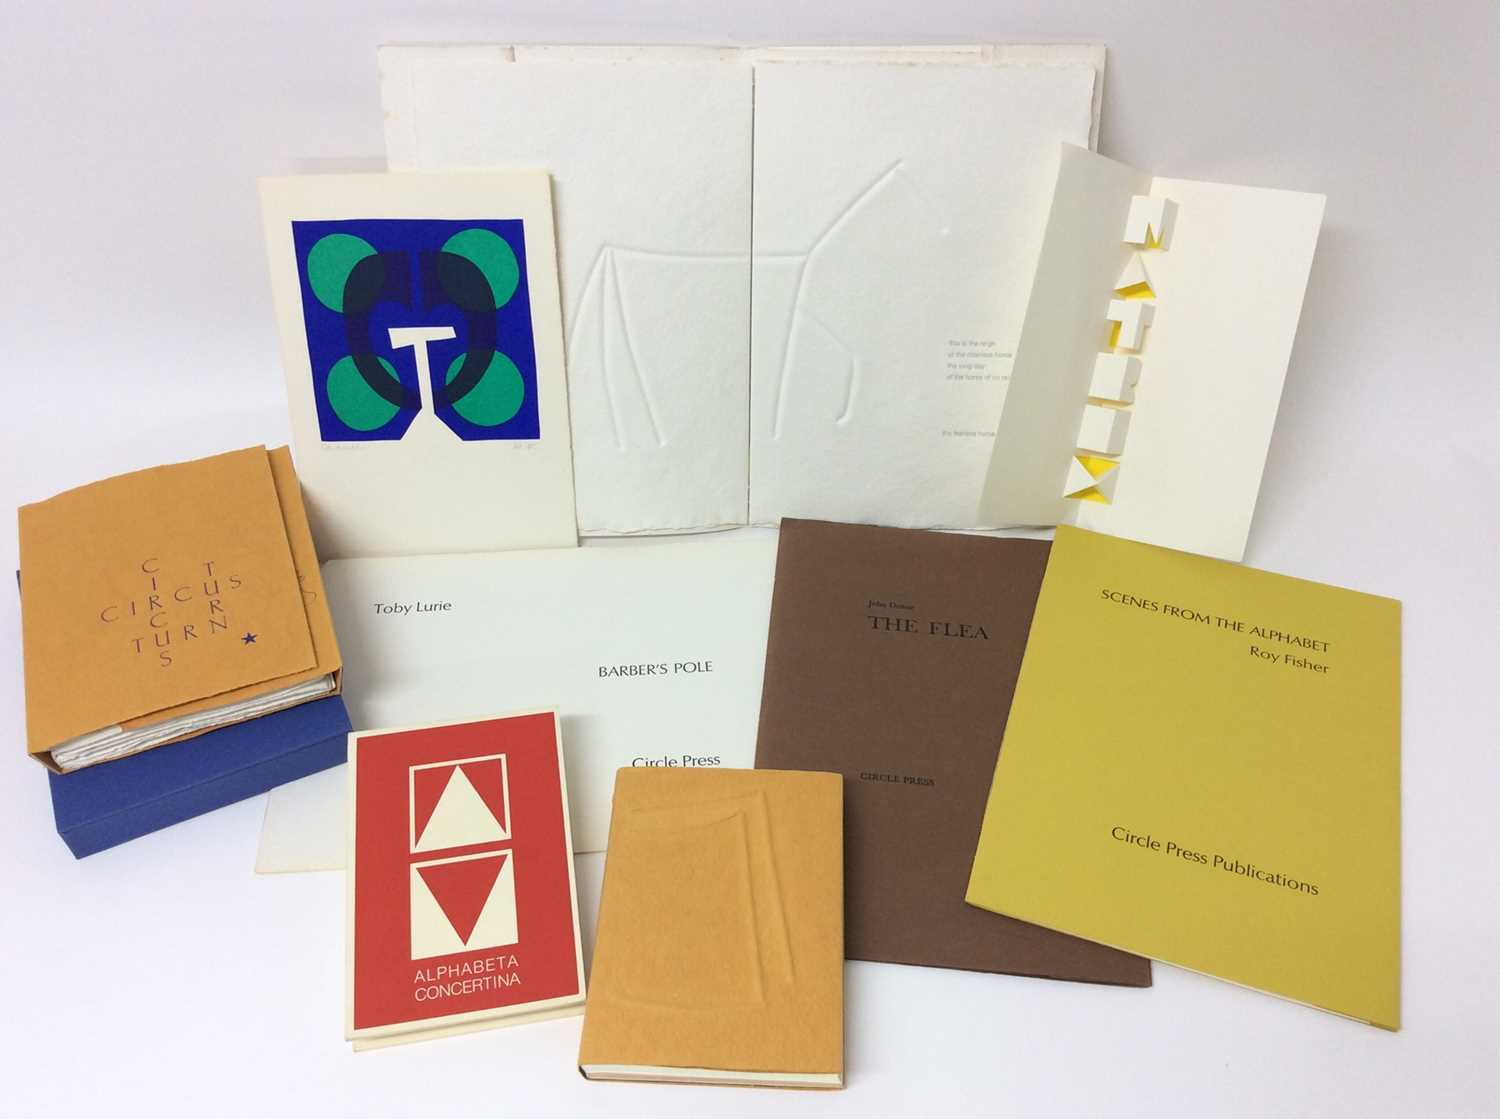 Lot 32 - Ronald King and Circle Press publications, good collection (9)